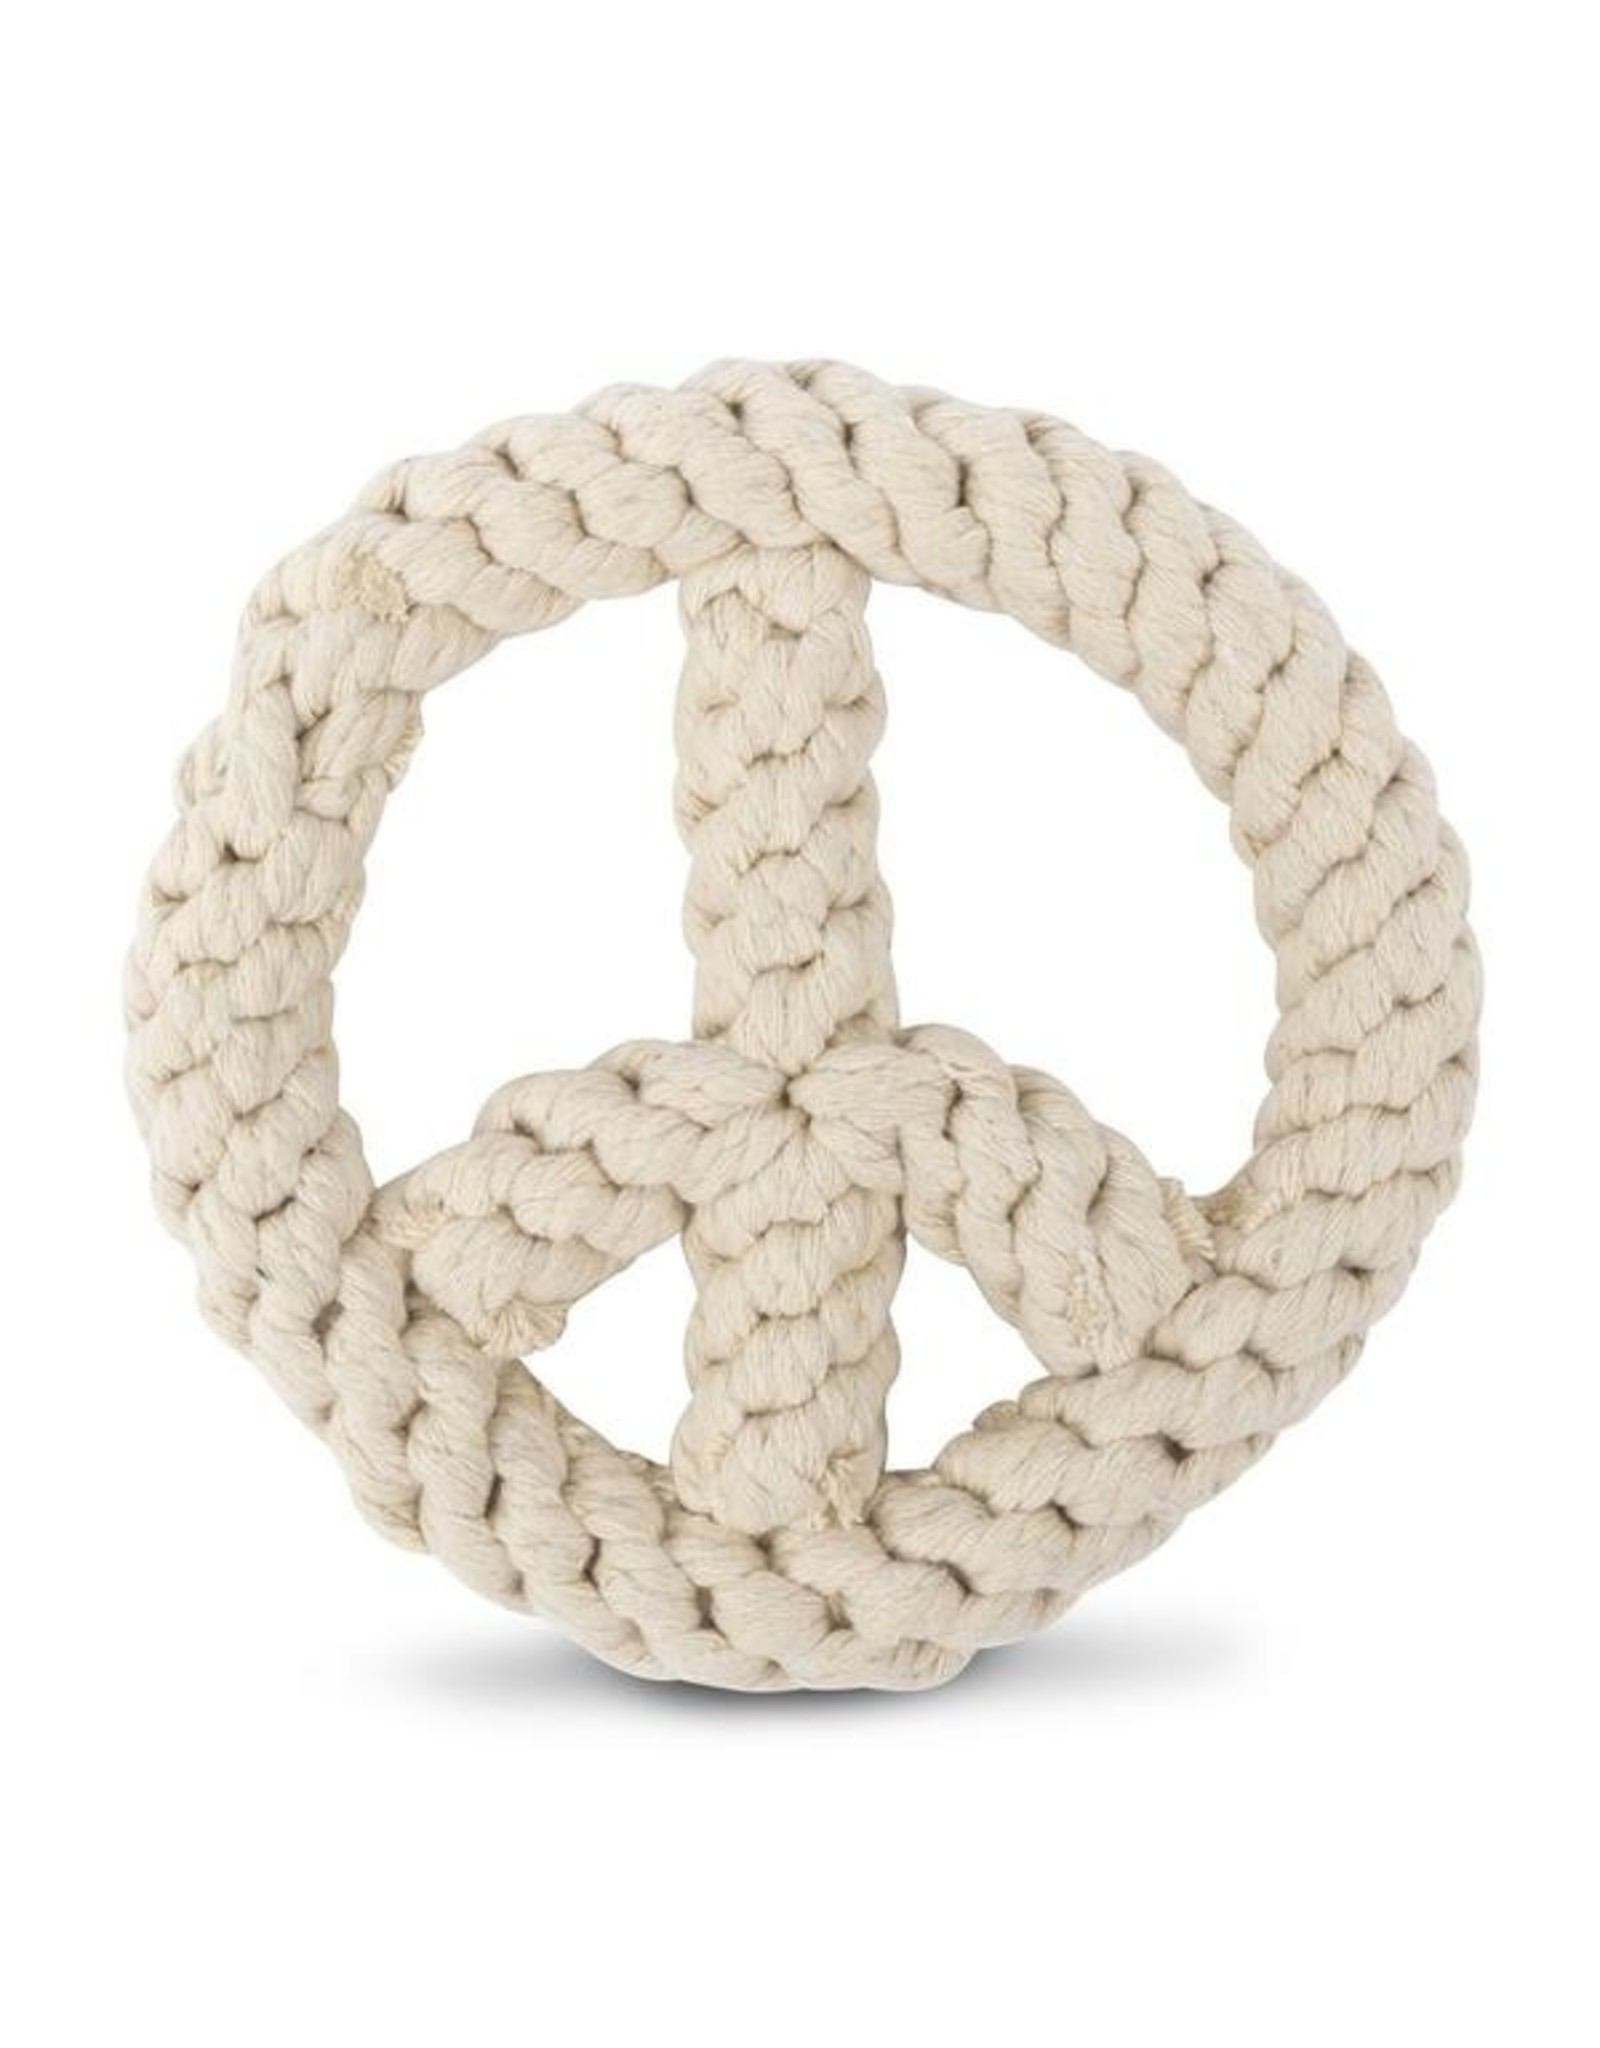 Harry Barker Harry Barker Peace on Earth Peace Sign Knotted Rope Dog Toy